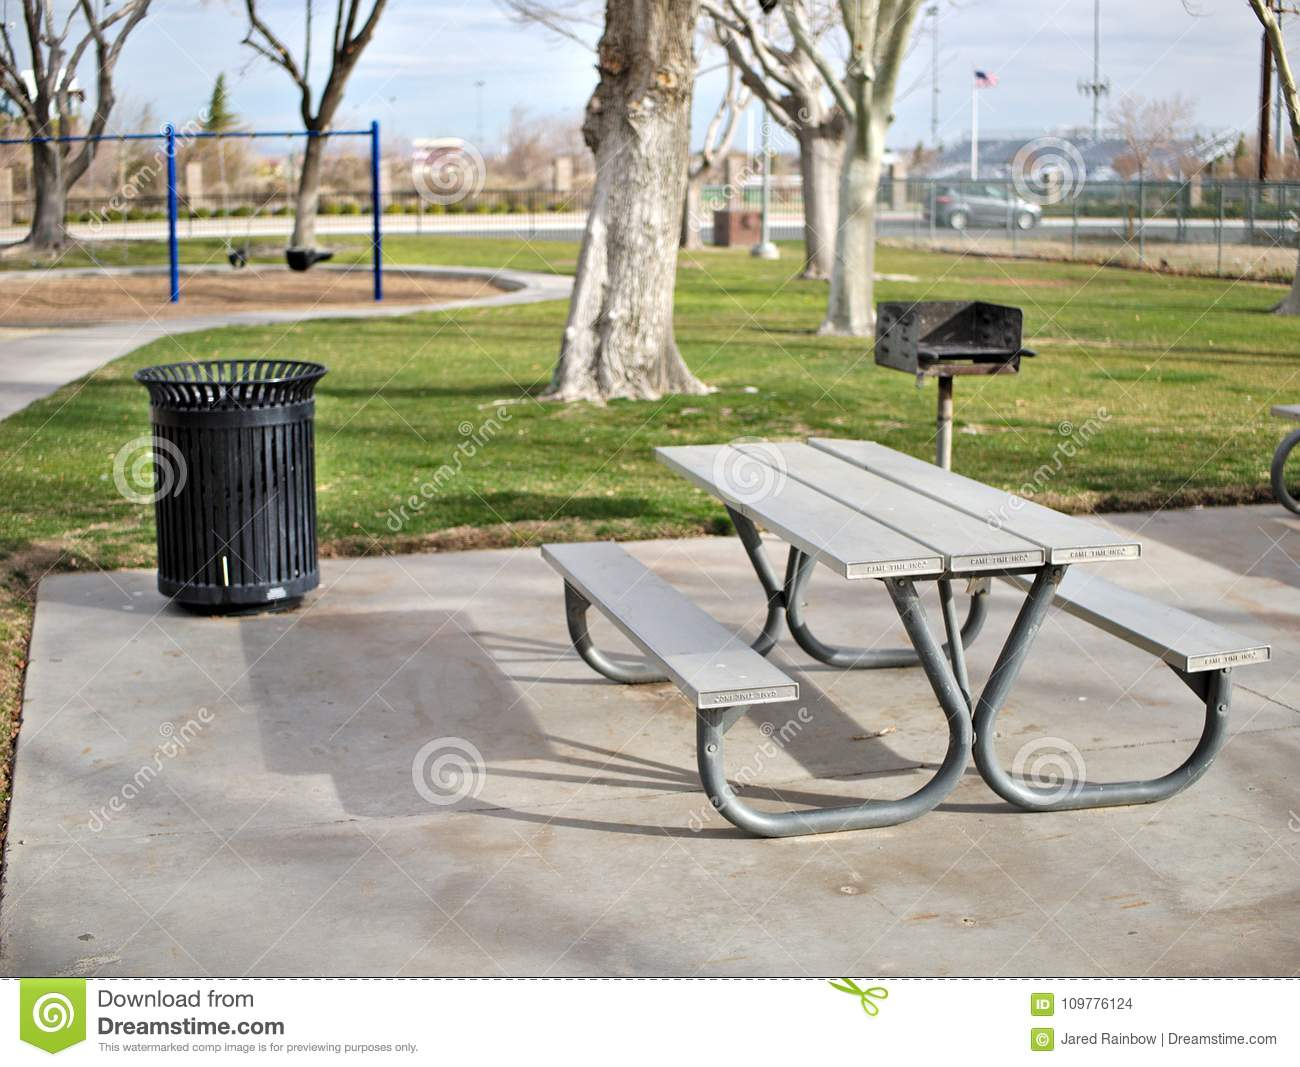 Enjoyable Metal Park Bench And Picnic Area In Park Stock Photo Caraccident5 Cool Chair Designs And Ideas Caraccident5Info